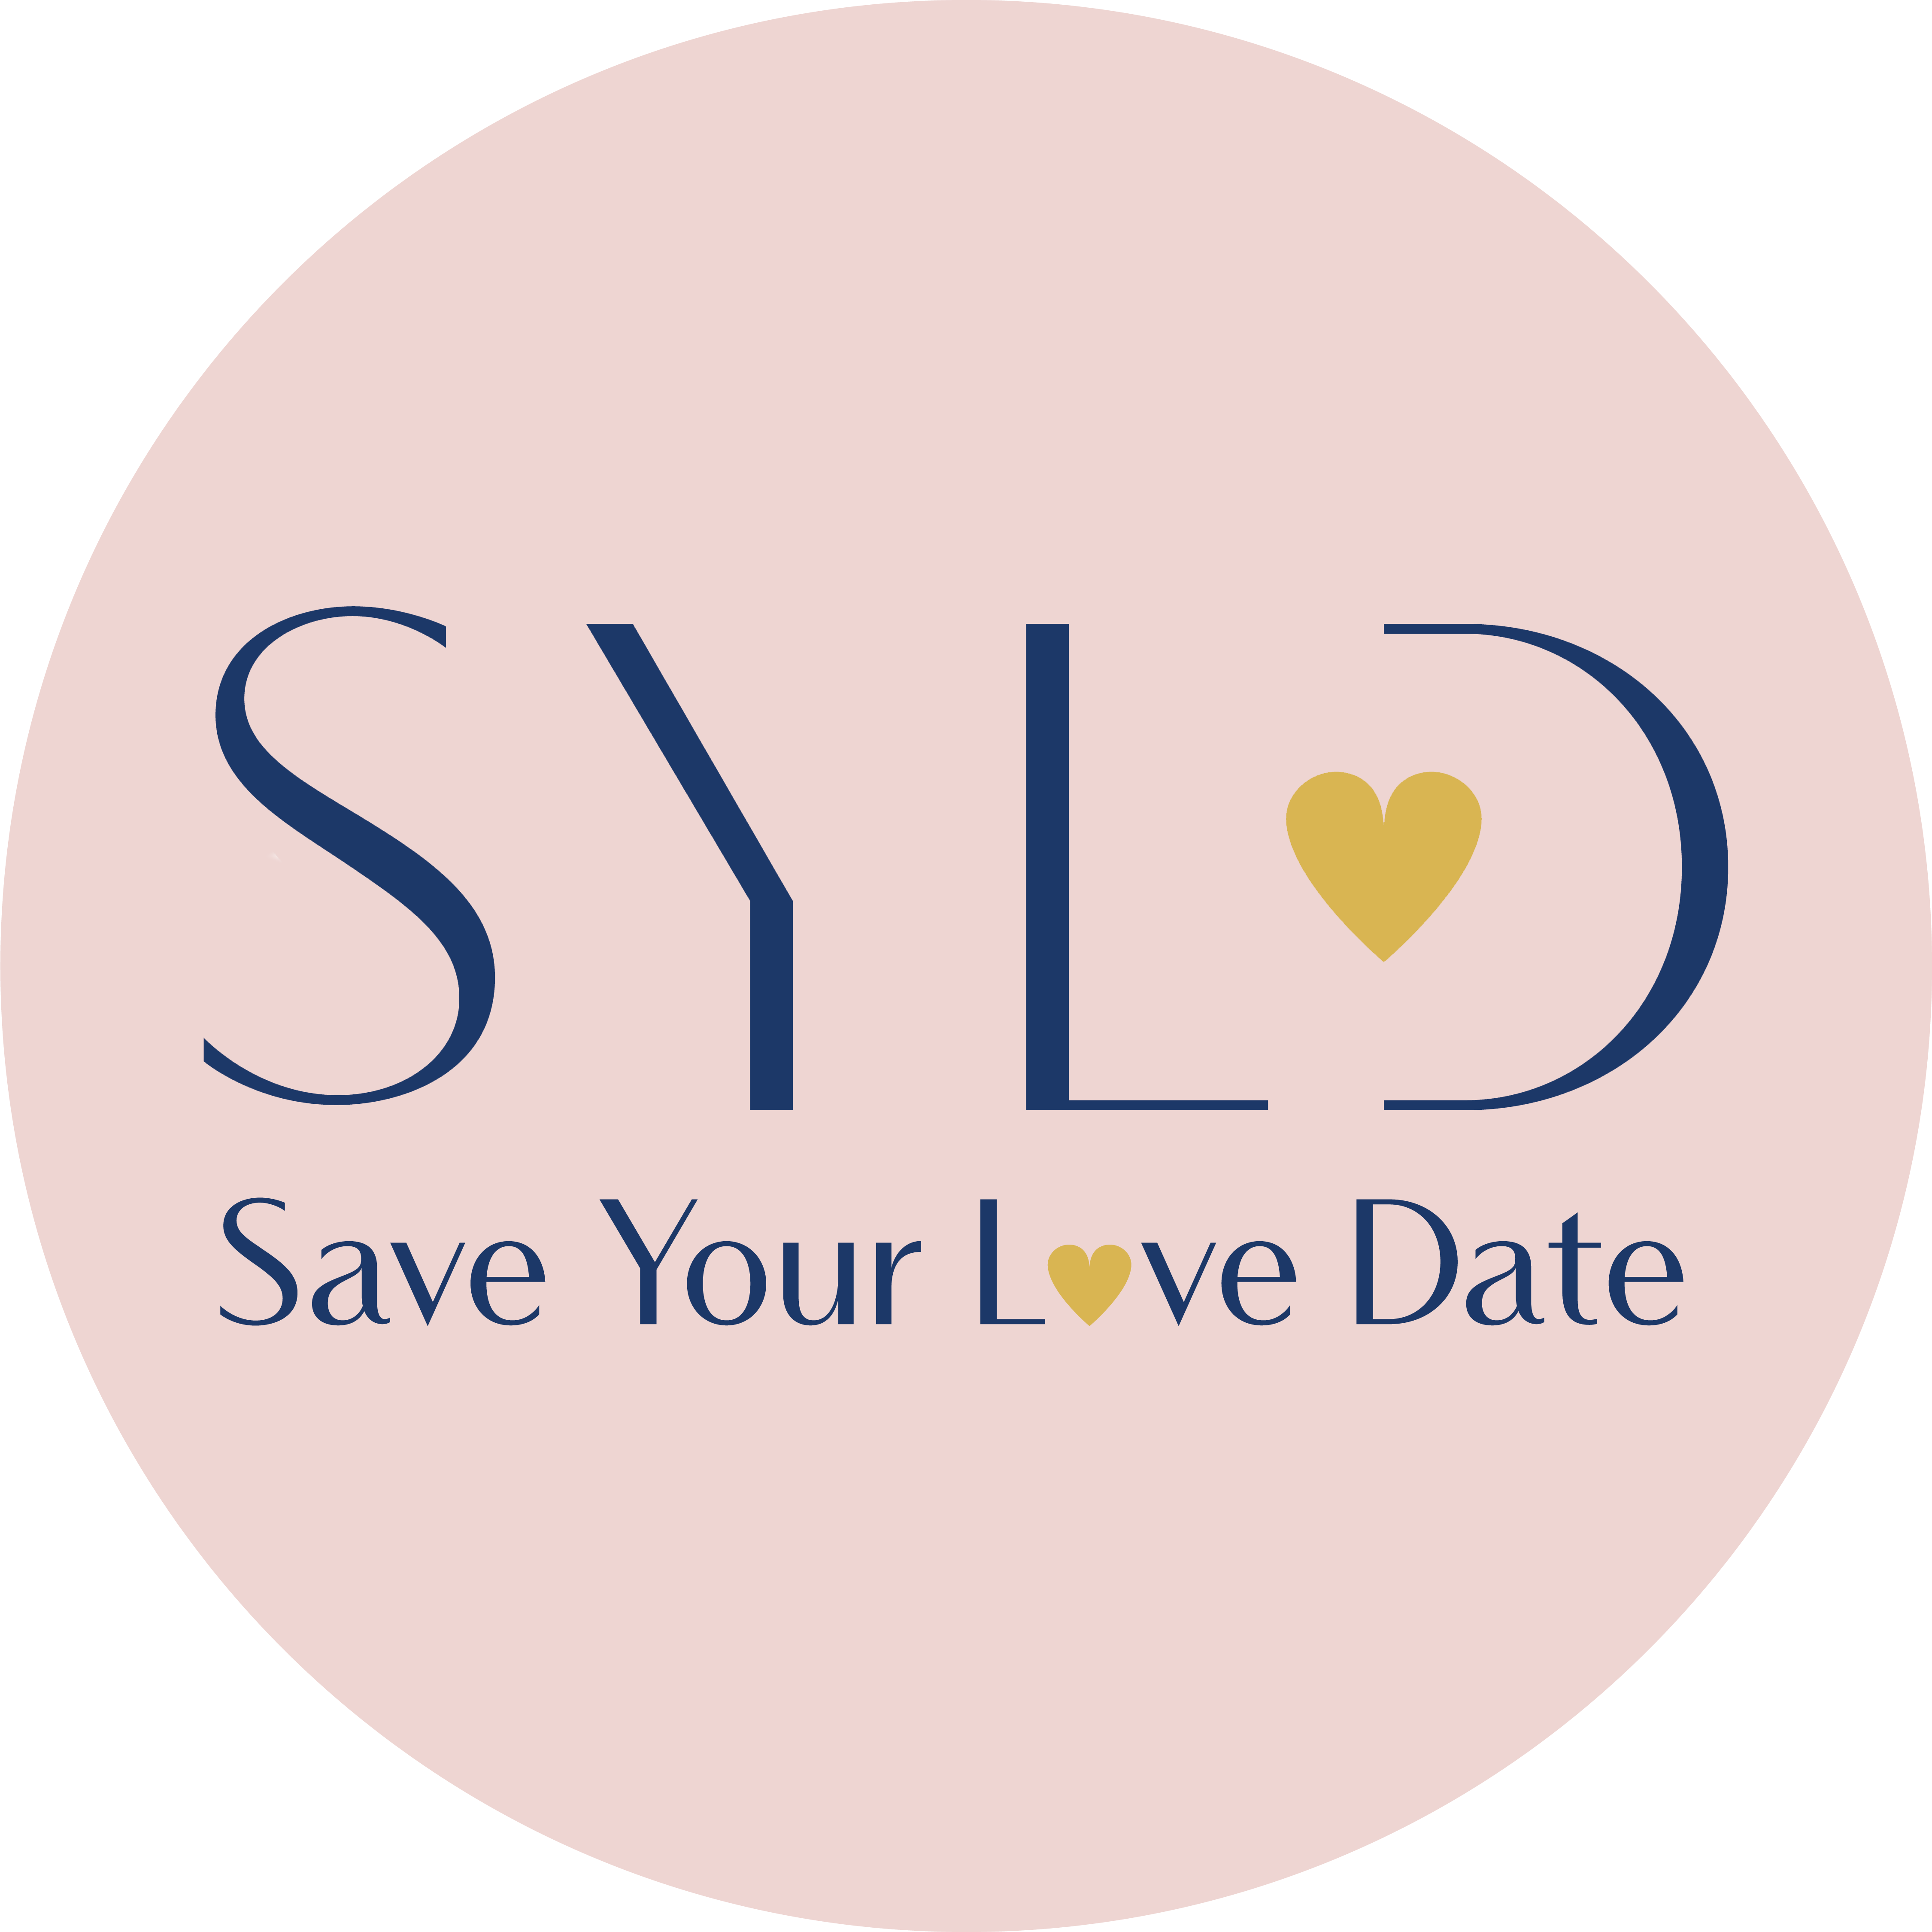 Save Your Love Date